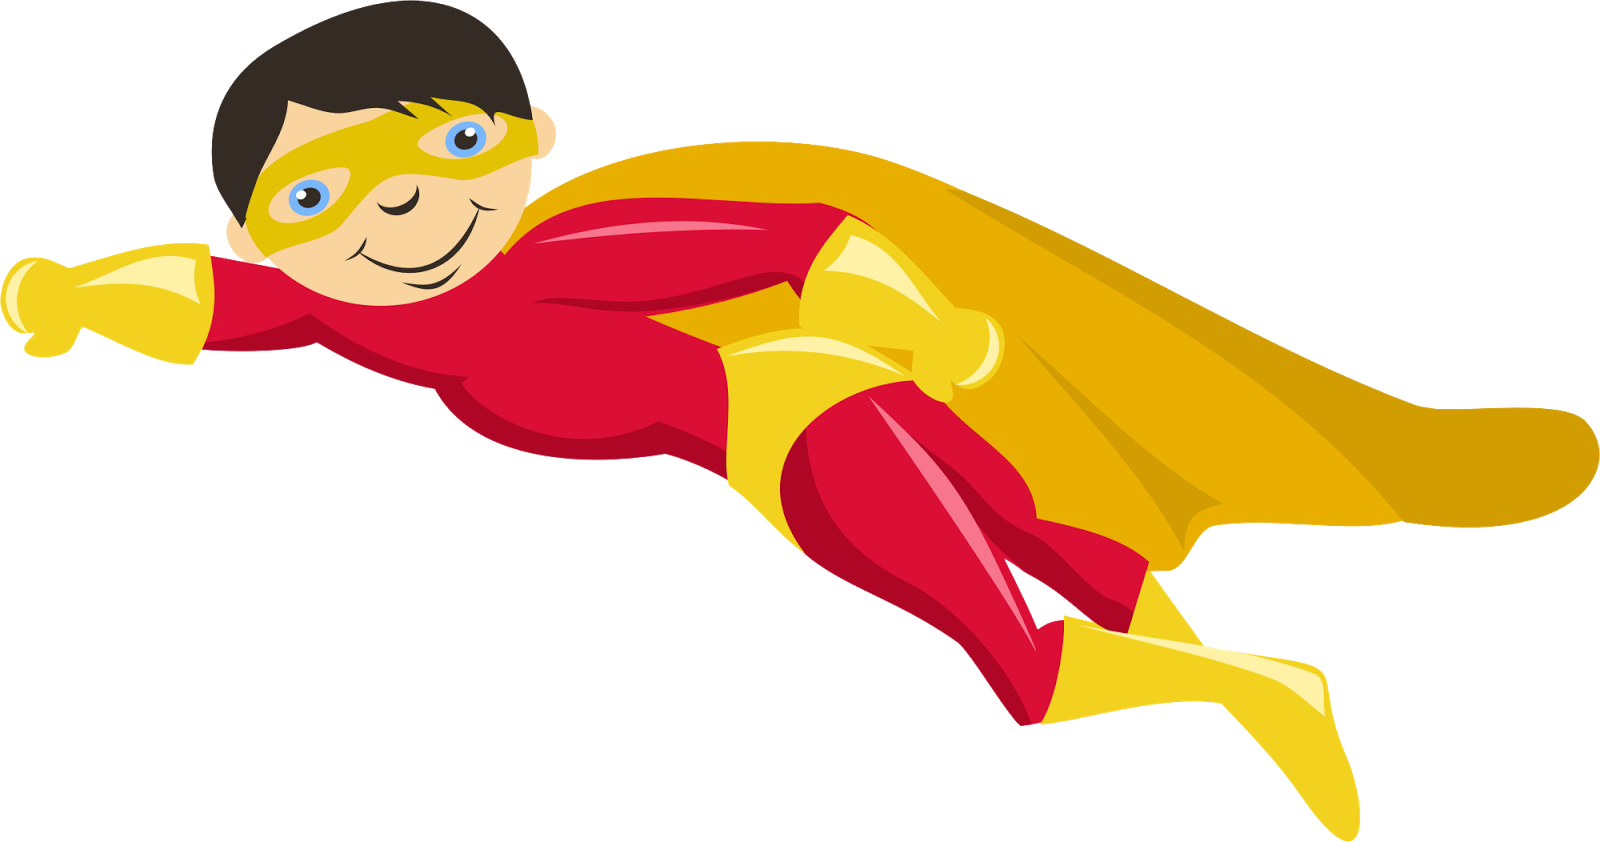 Number 1 clipart superhero. Kids with superheroes costumes